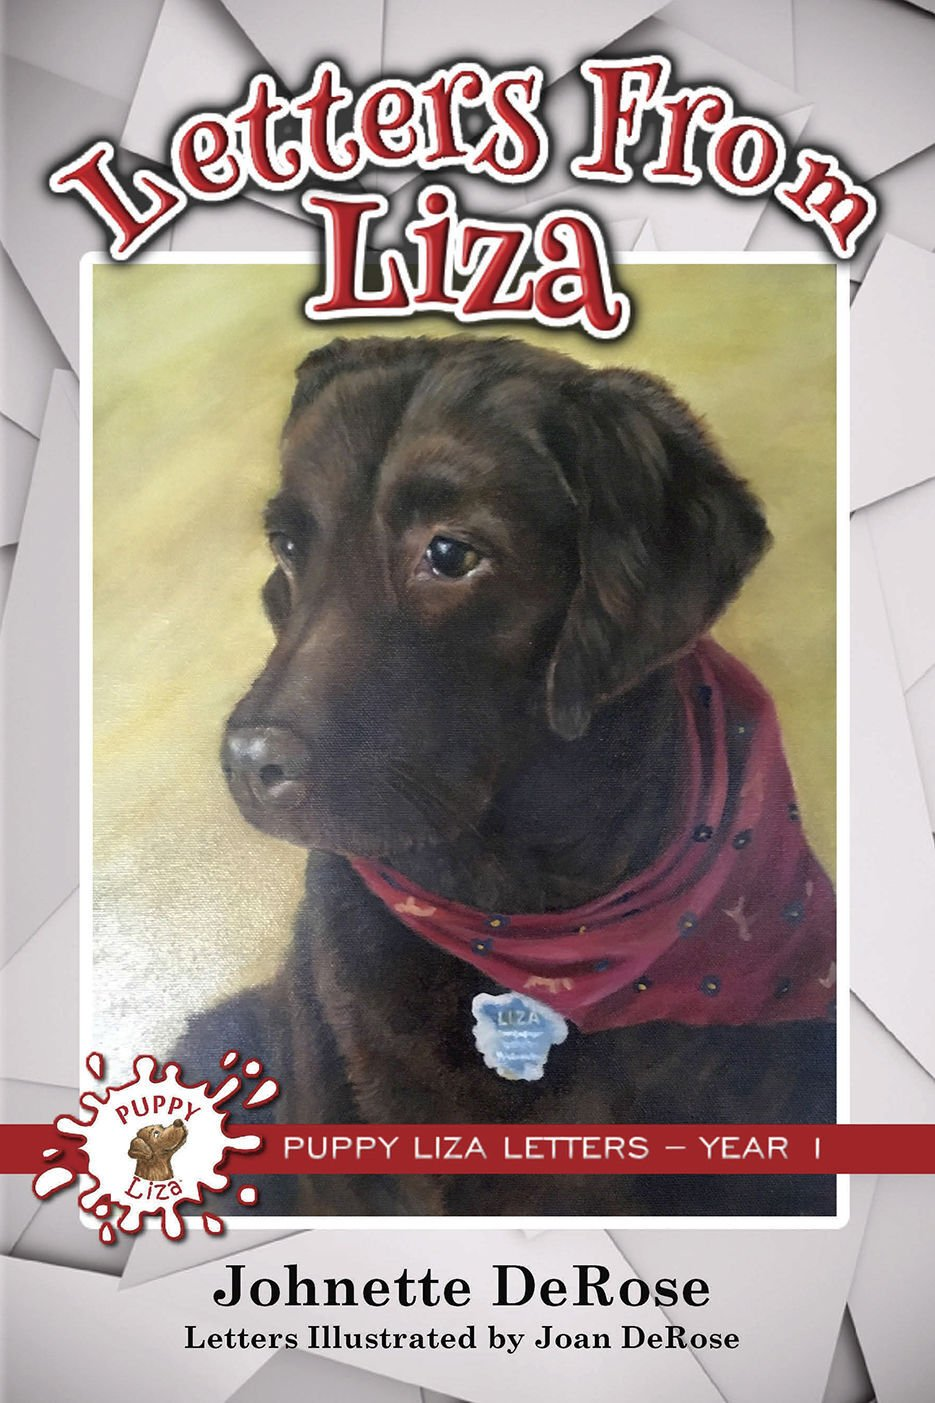 Puppy Liza letters are now in new book